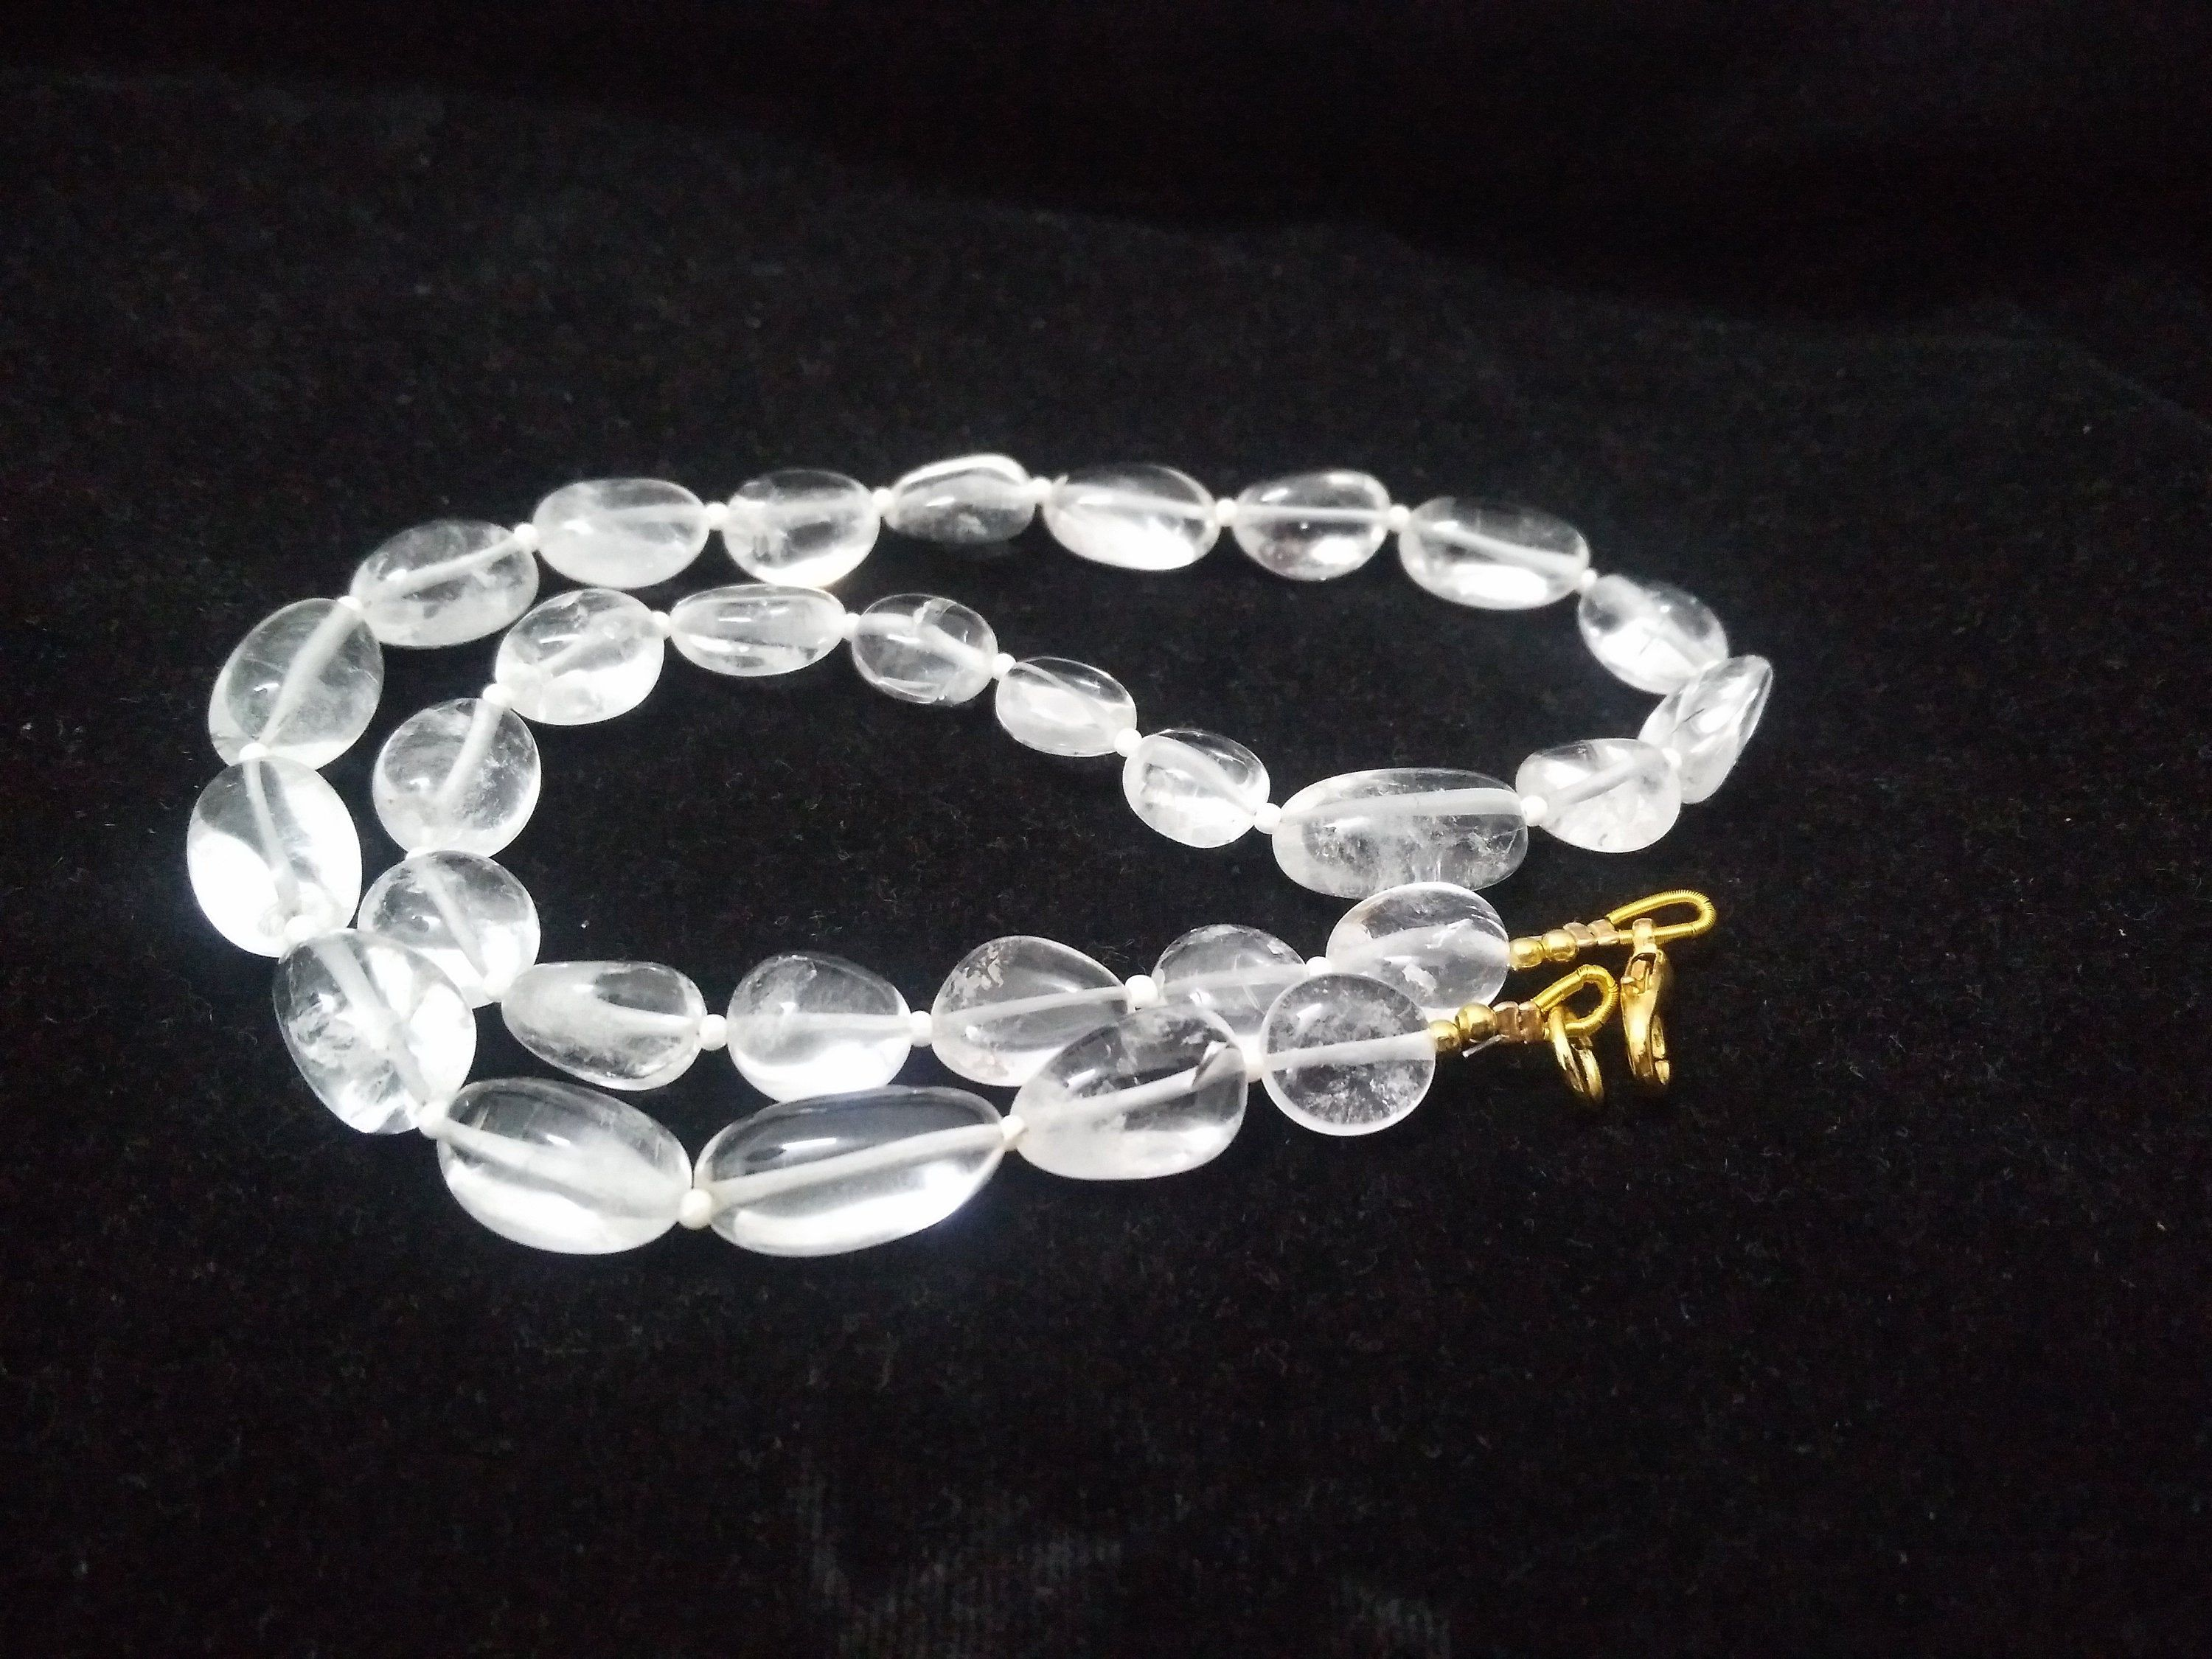 clear crystal quartz necklace Smooth nuggets beads nacklace 10-15mm,AAA beads,beautiful smooth beads 16 nacklace silver plating clasp #quartznecklace